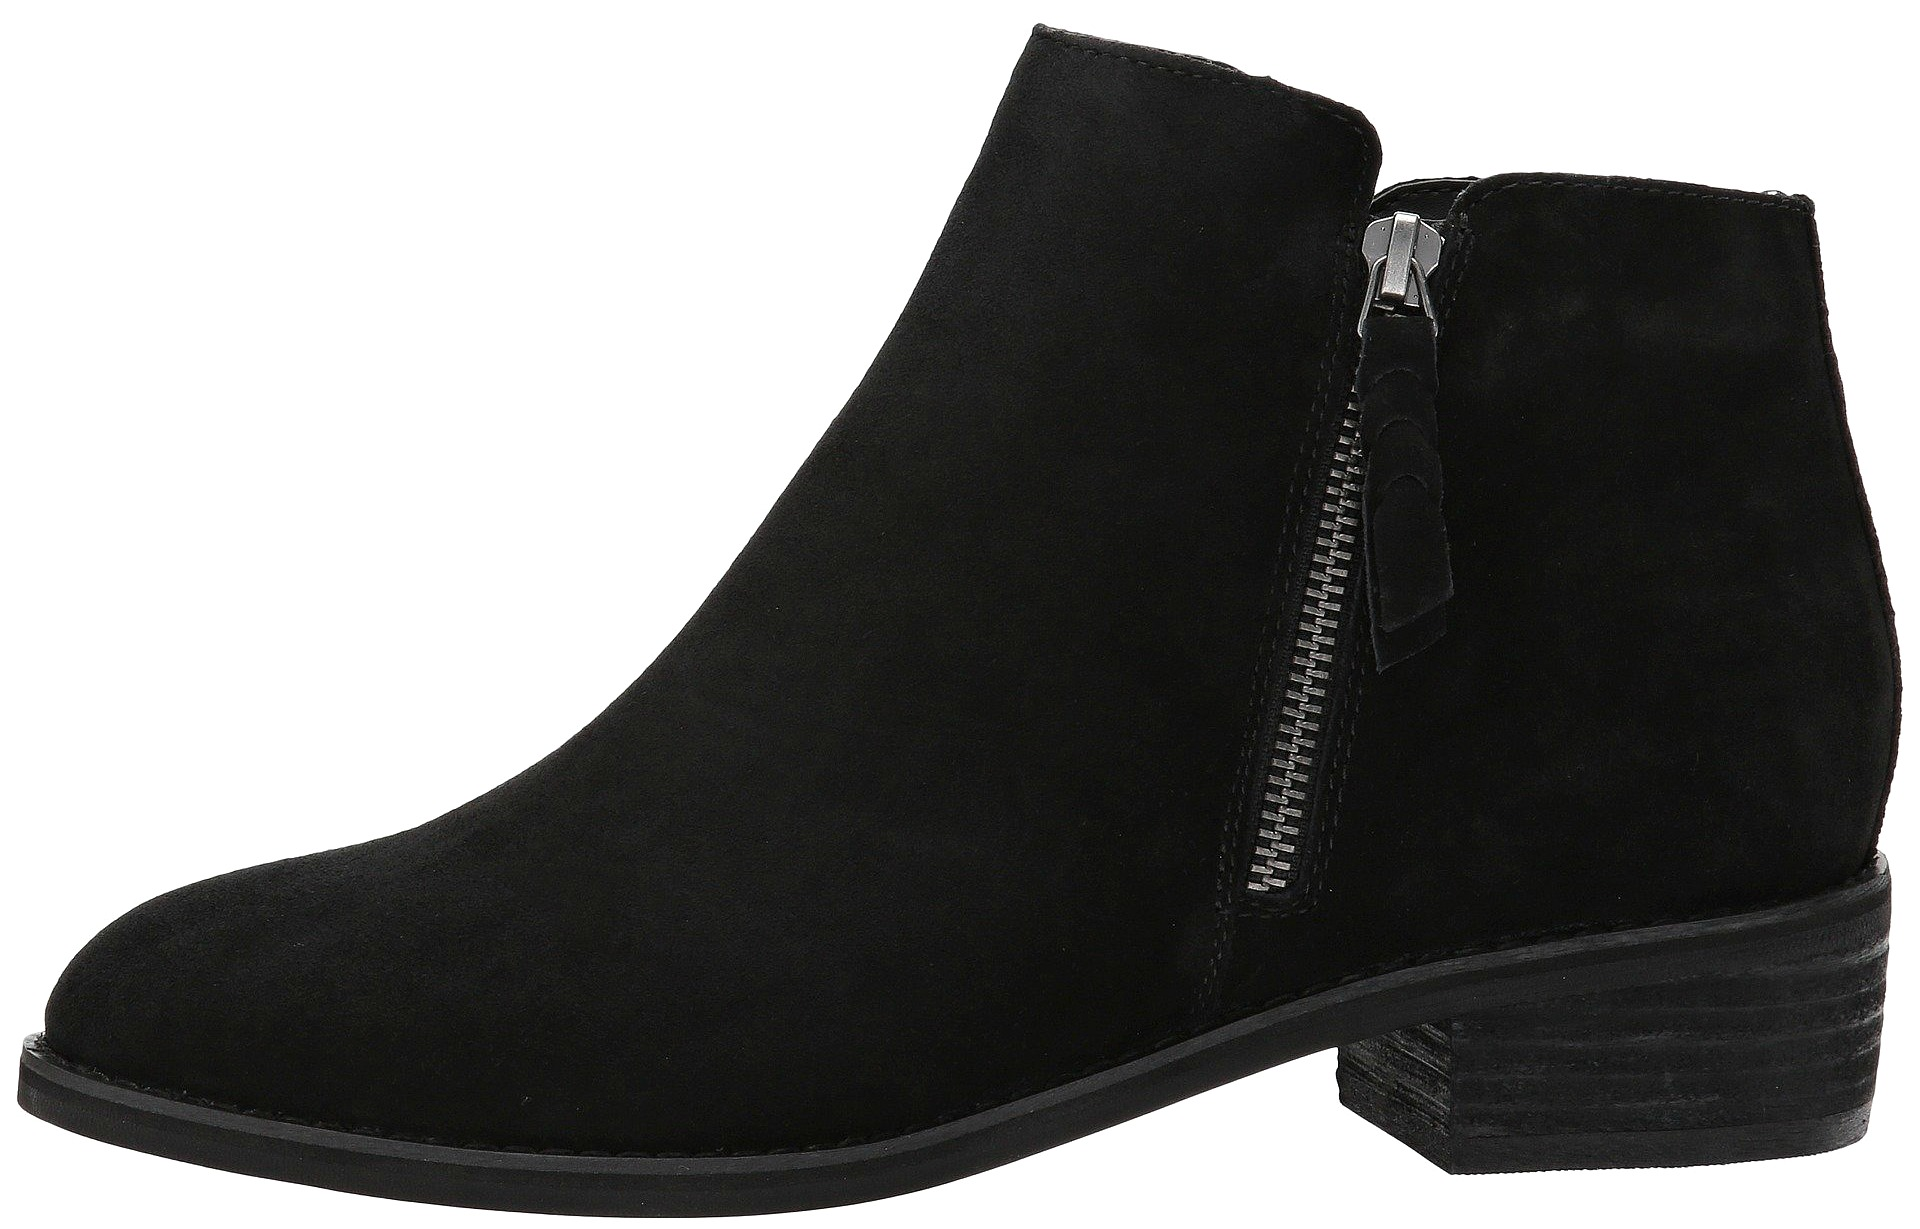 a99c7bec4328 10 Best Black Ankle Boots for Walking